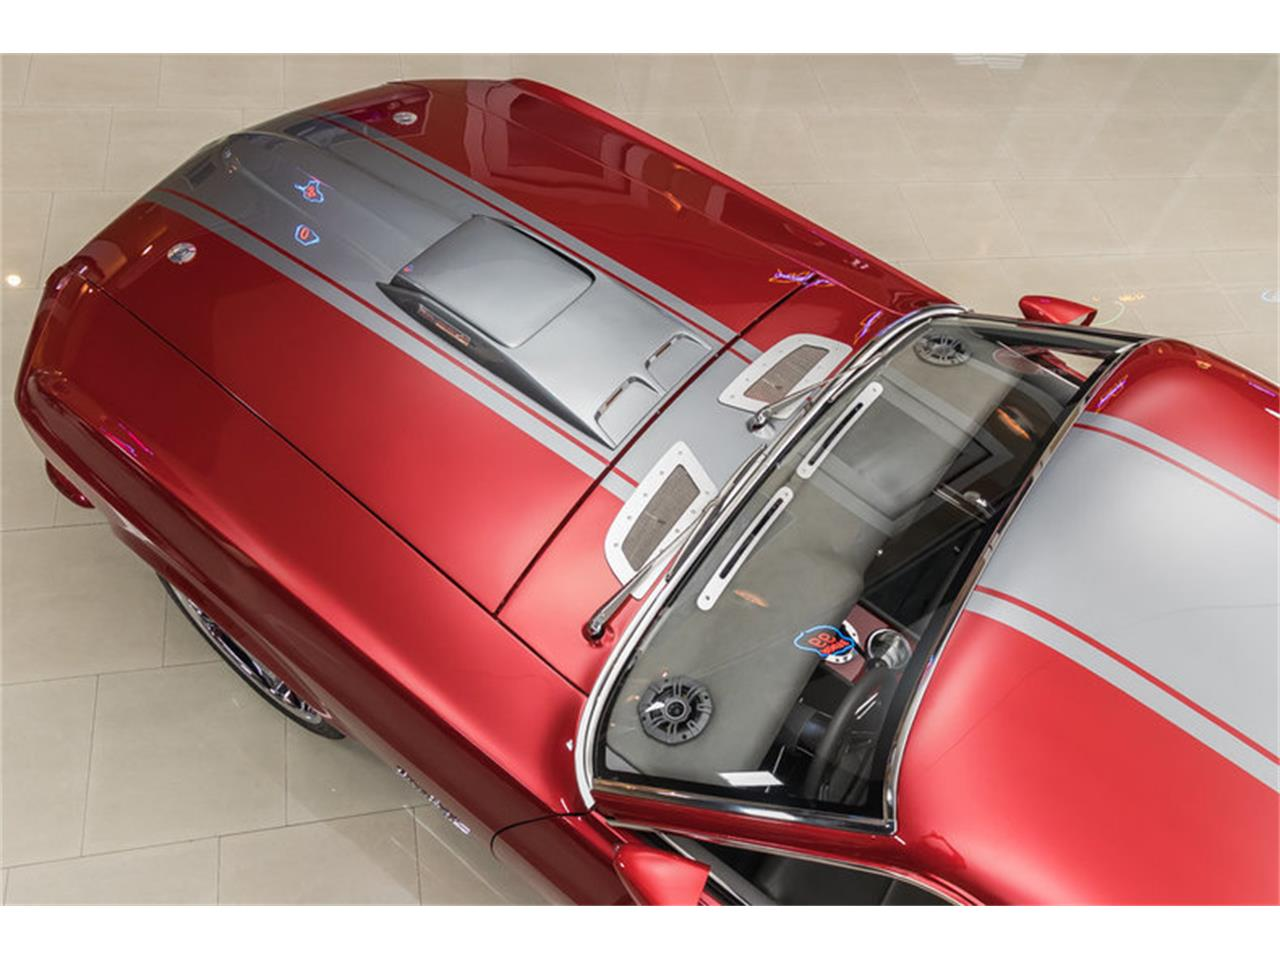 Large Picture of Classic '69 Mustang Fastback Restomod located in Plymouth Michigan - $194,900.00 Offered by Vanguard Motor Sales - L6C8